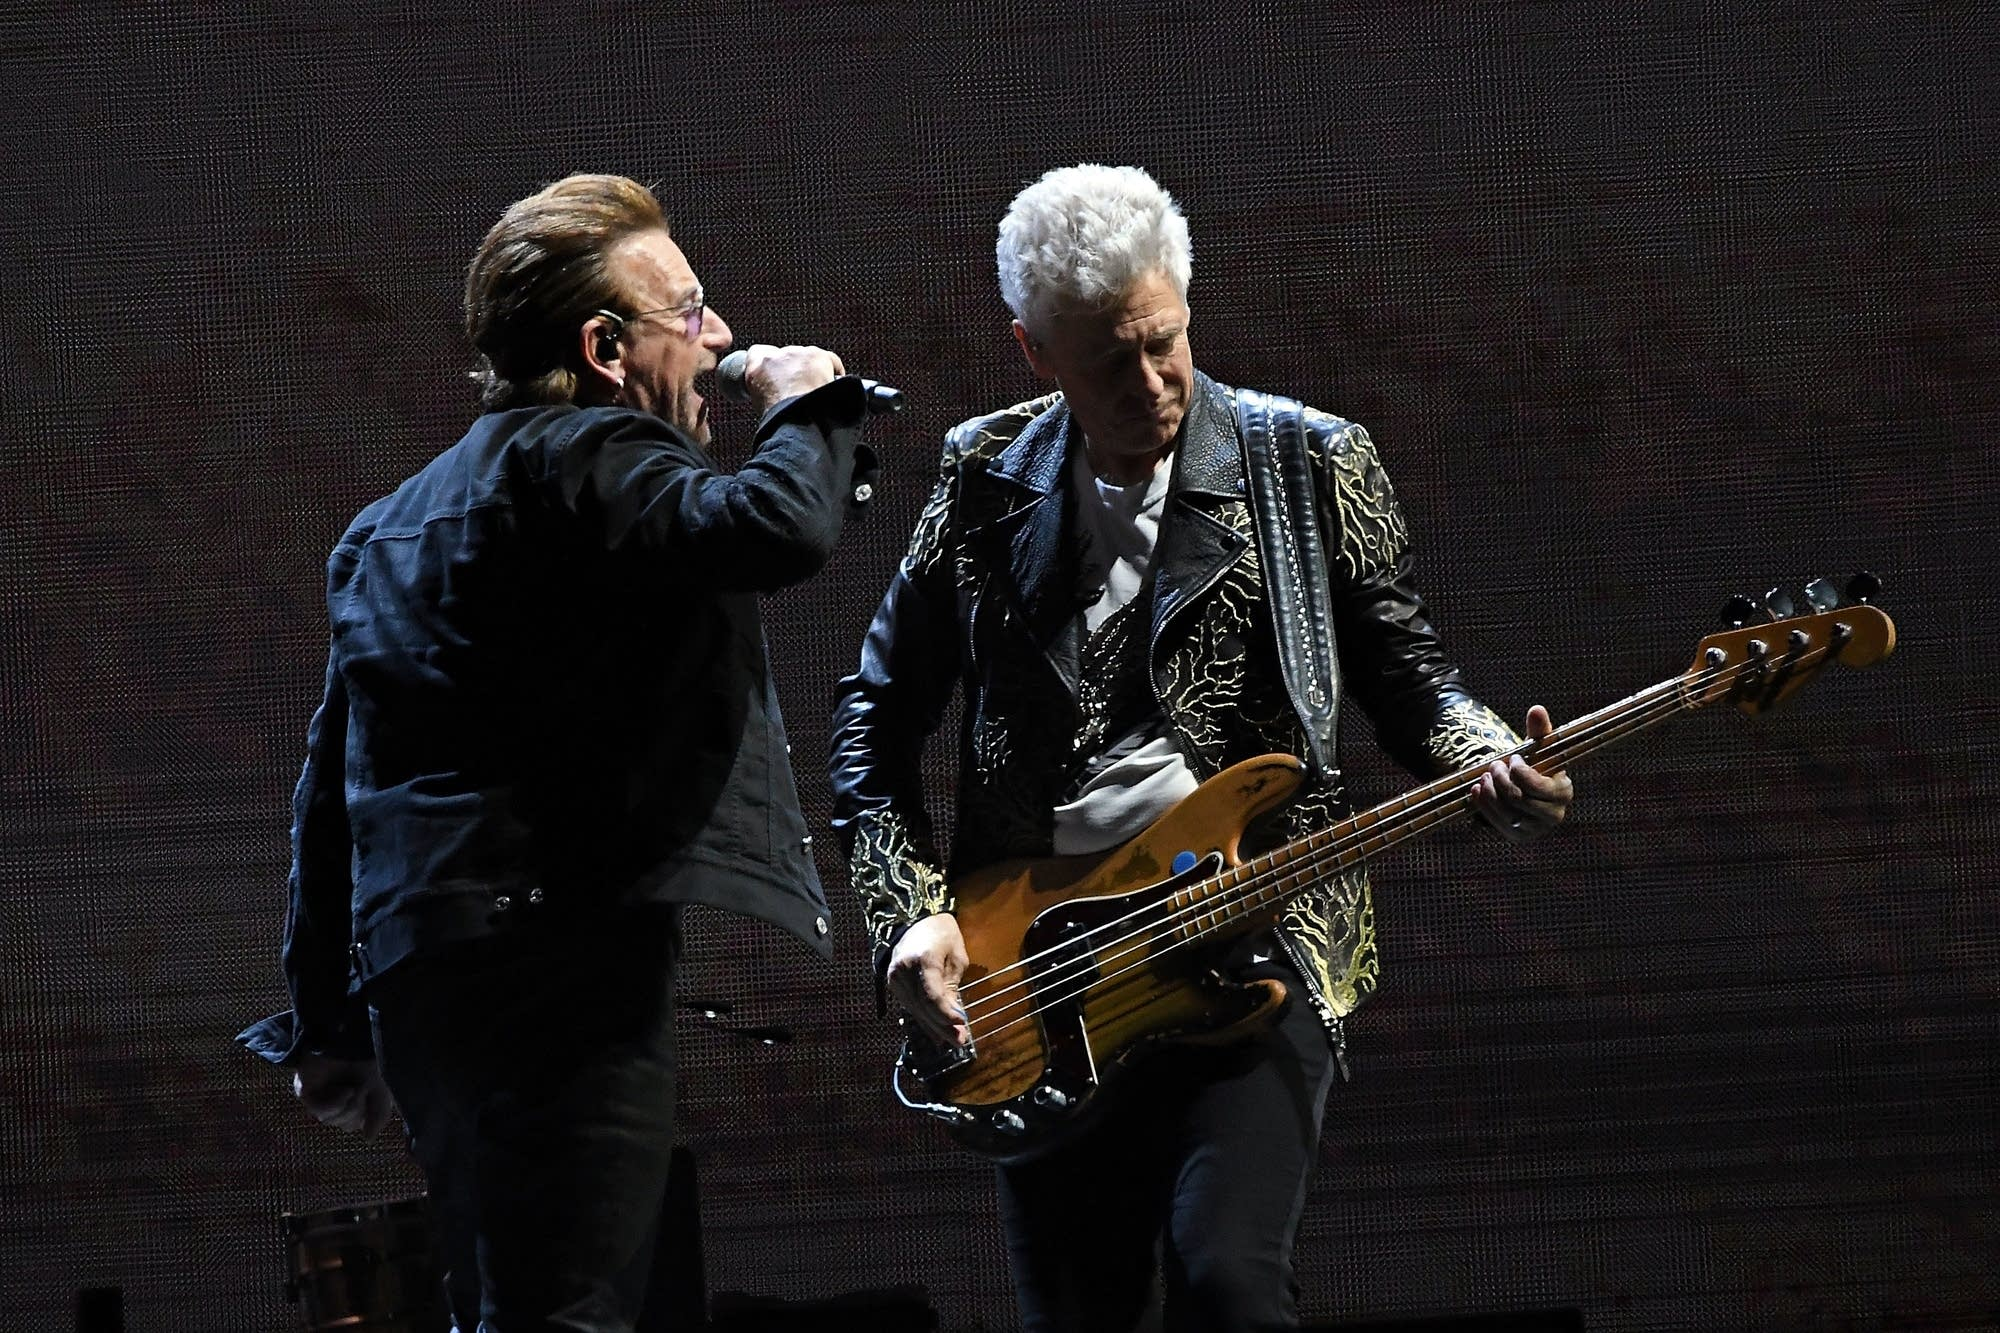 U2, 'The Joshua Tree' tour